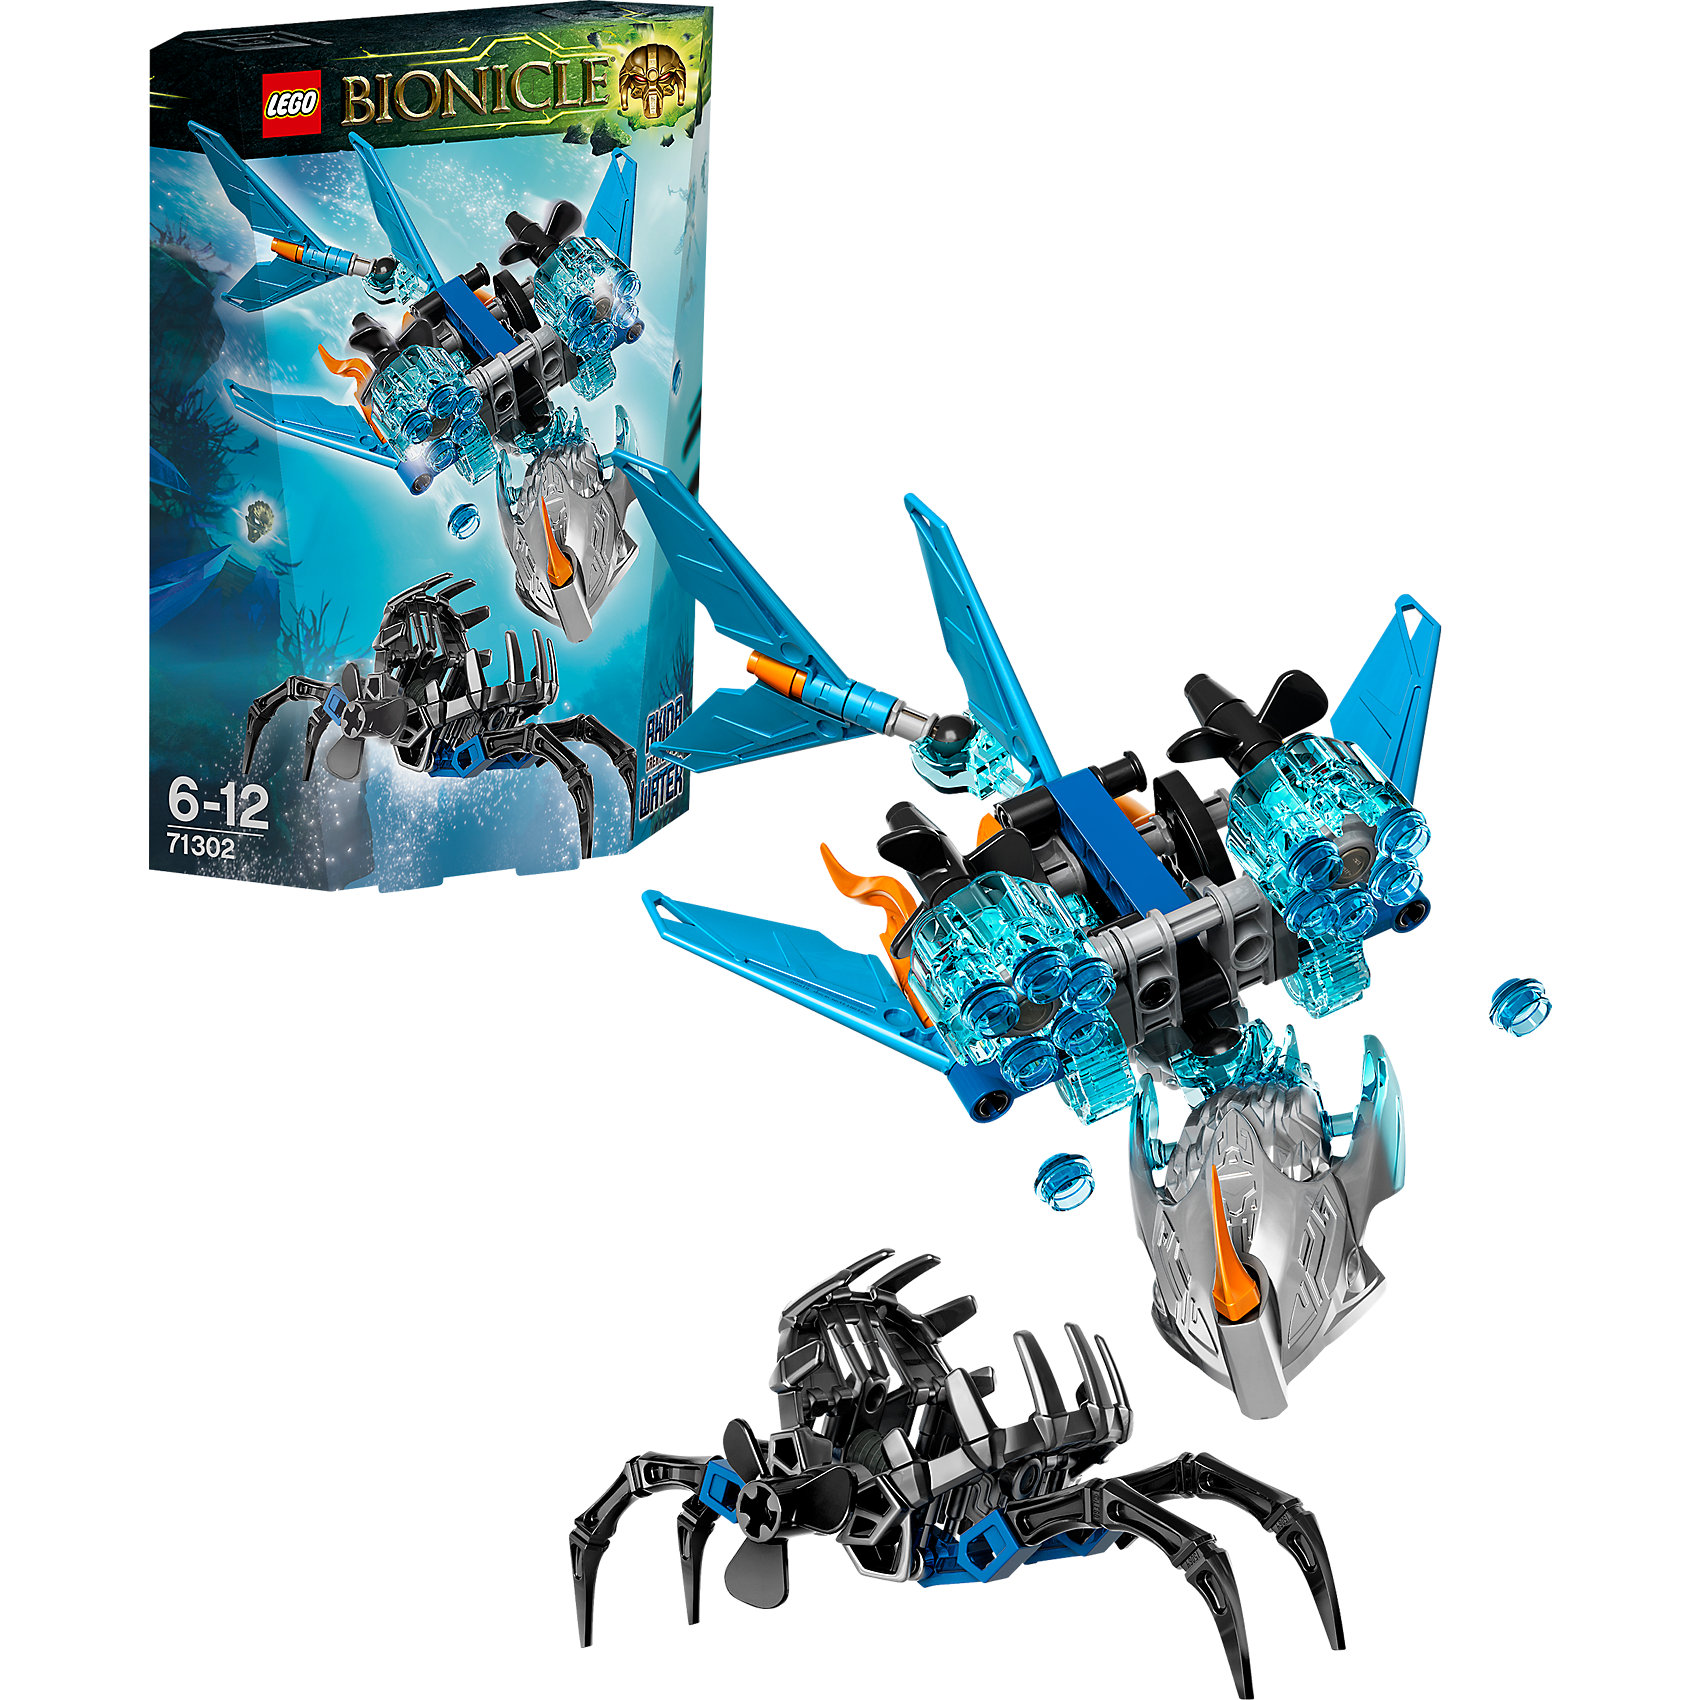 LEGO LEGO BIONICLE 71302: Акида, Тотемное животное Воды free shipping rt2 3d virtual reality vr video drone fpv goggles glasses w c600 3d camera kit